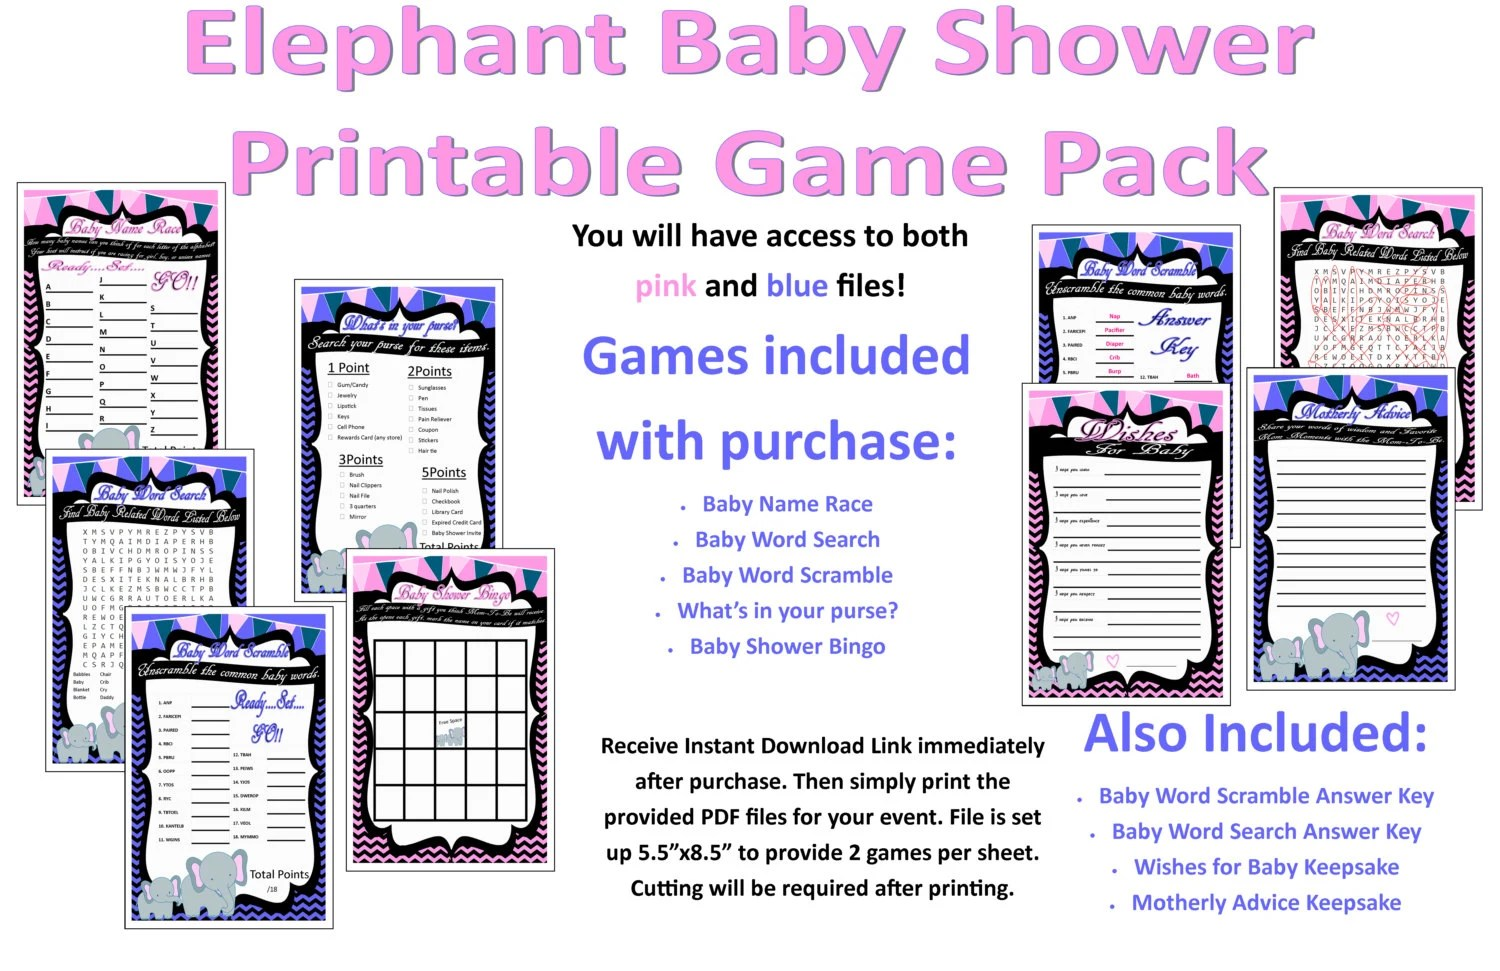 Elephant Baby Shower Printable Game Pack With Answer Key